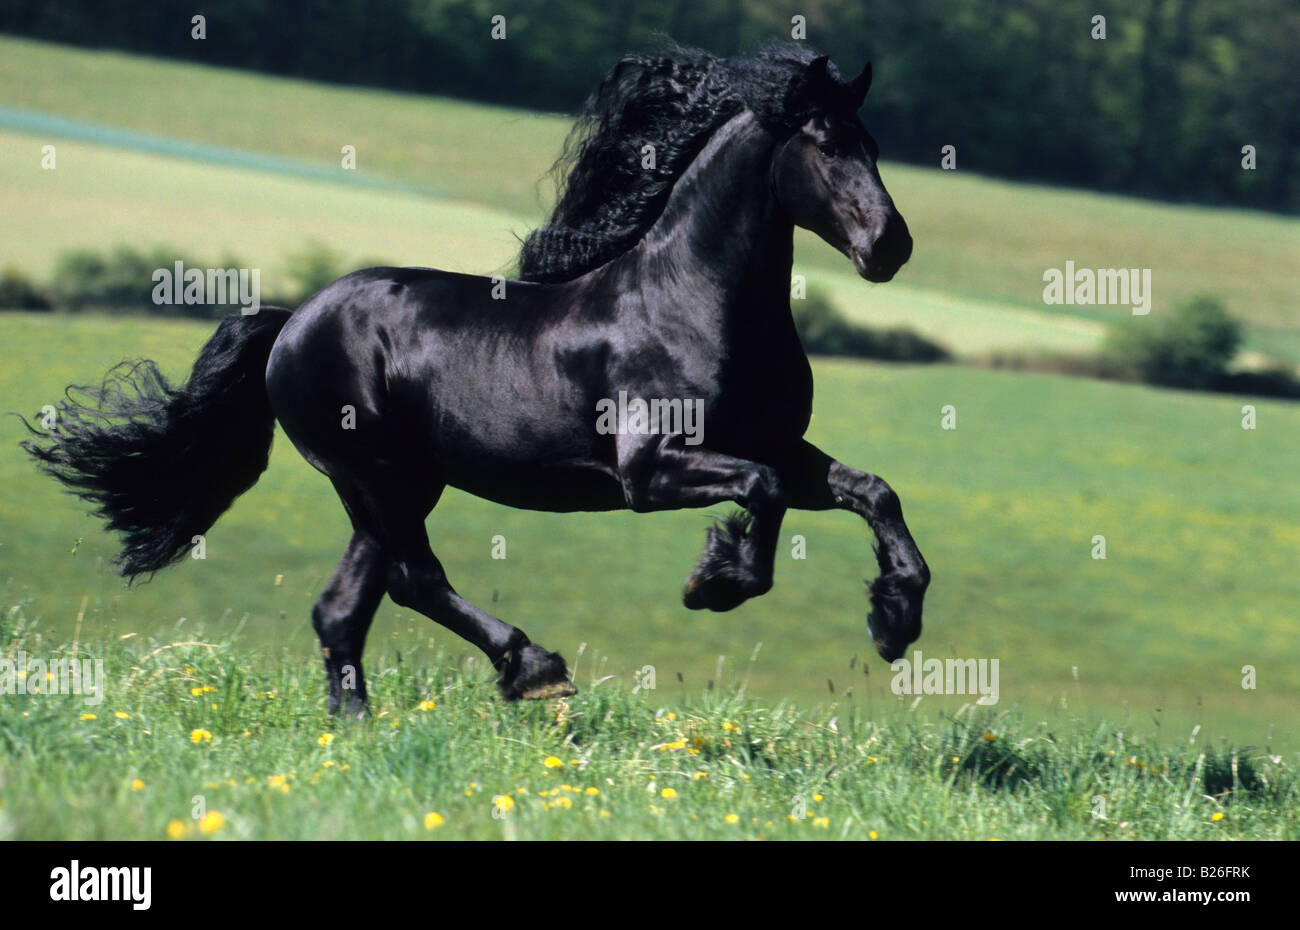 Friesian Horse (Equus caballus), stallion in gallop on a meadow - Stock Image